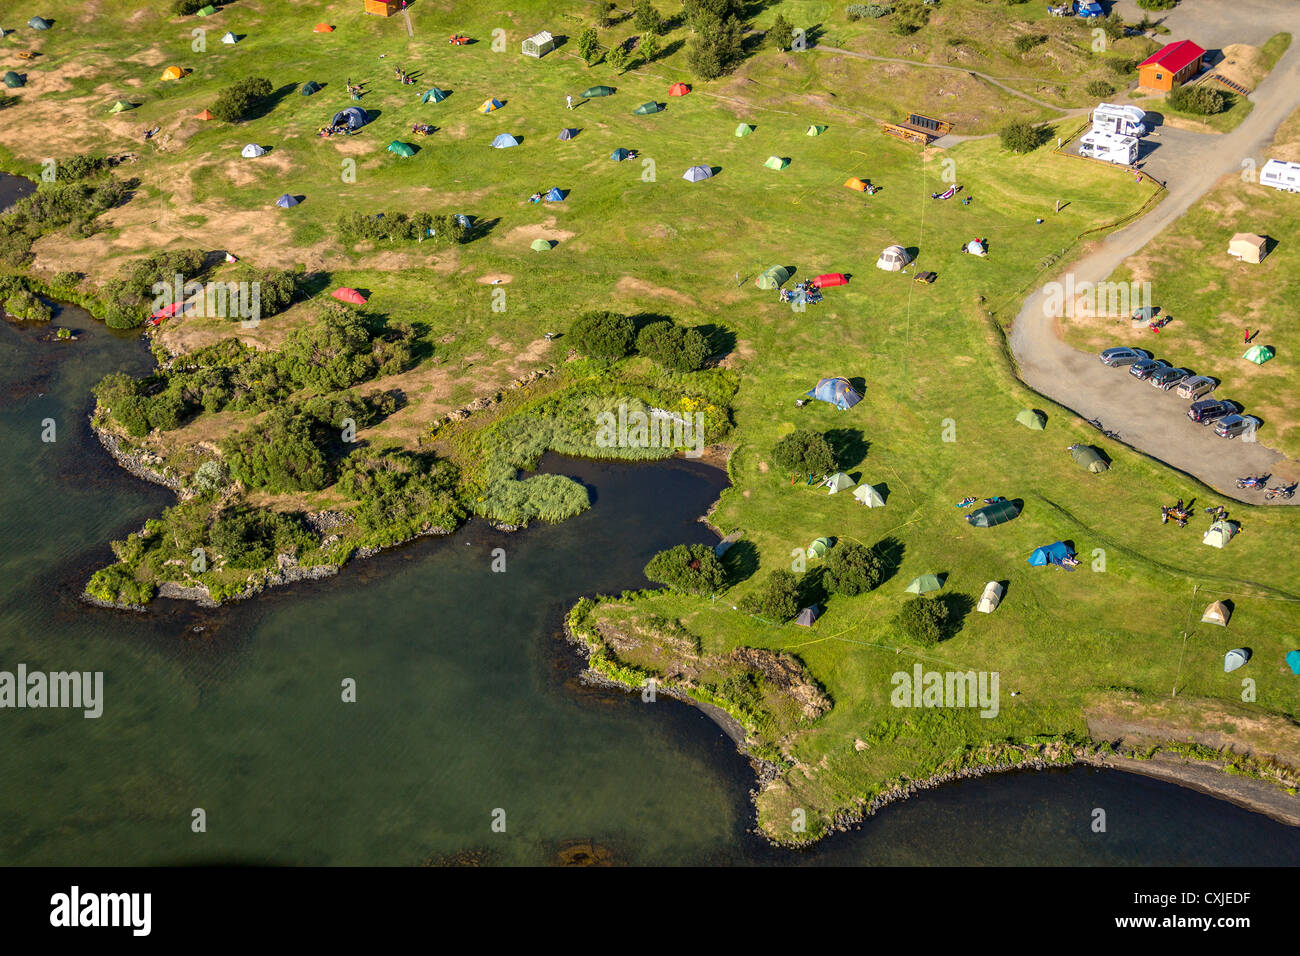 Aerial of campground Lake Myvatn, Northern Iceland - Stock Image